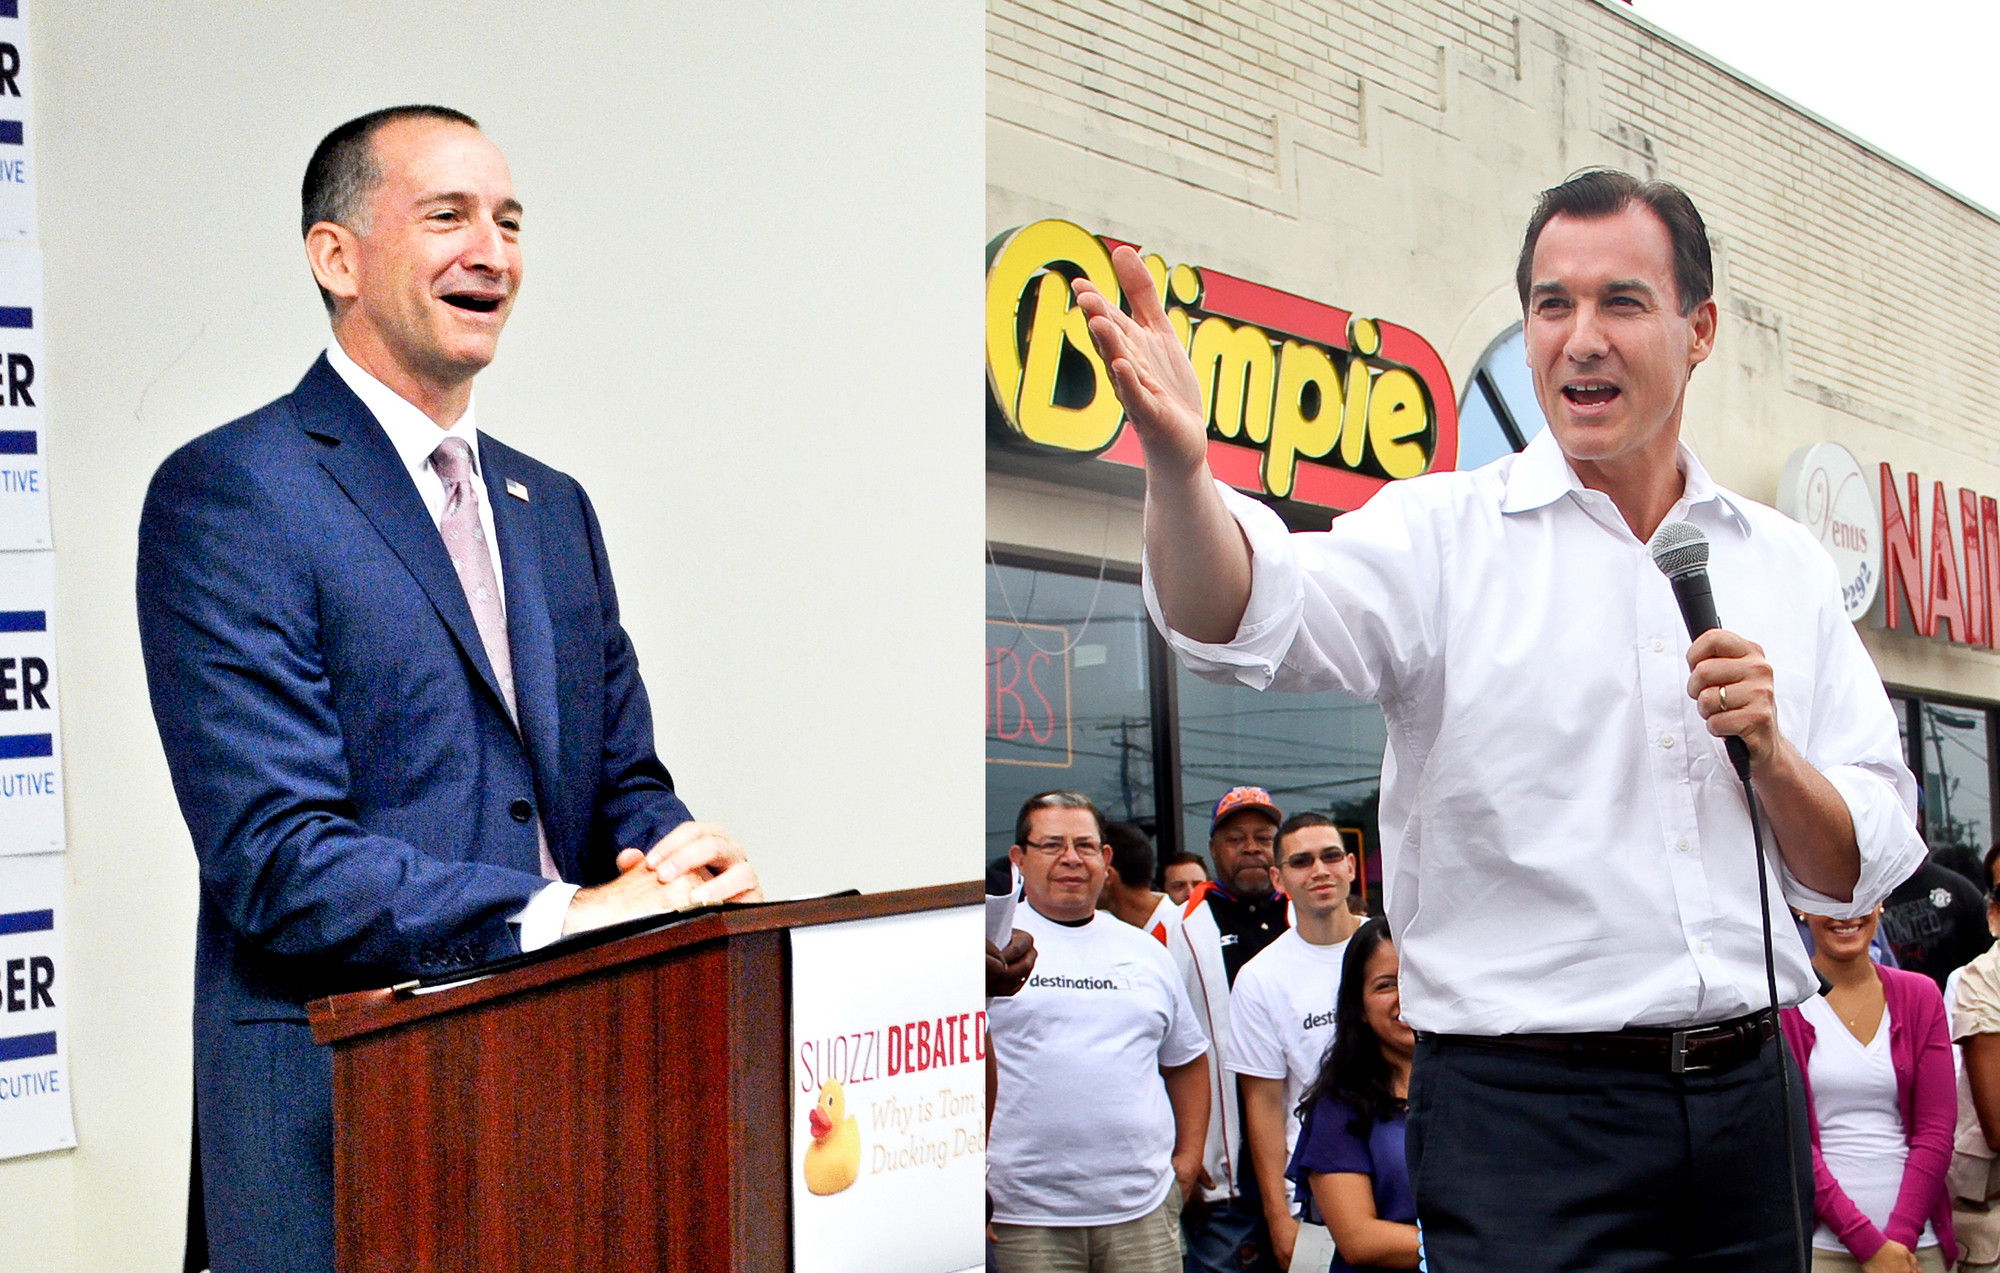 Adam Haber, left, and Tom Suozzi on the campaign trail.